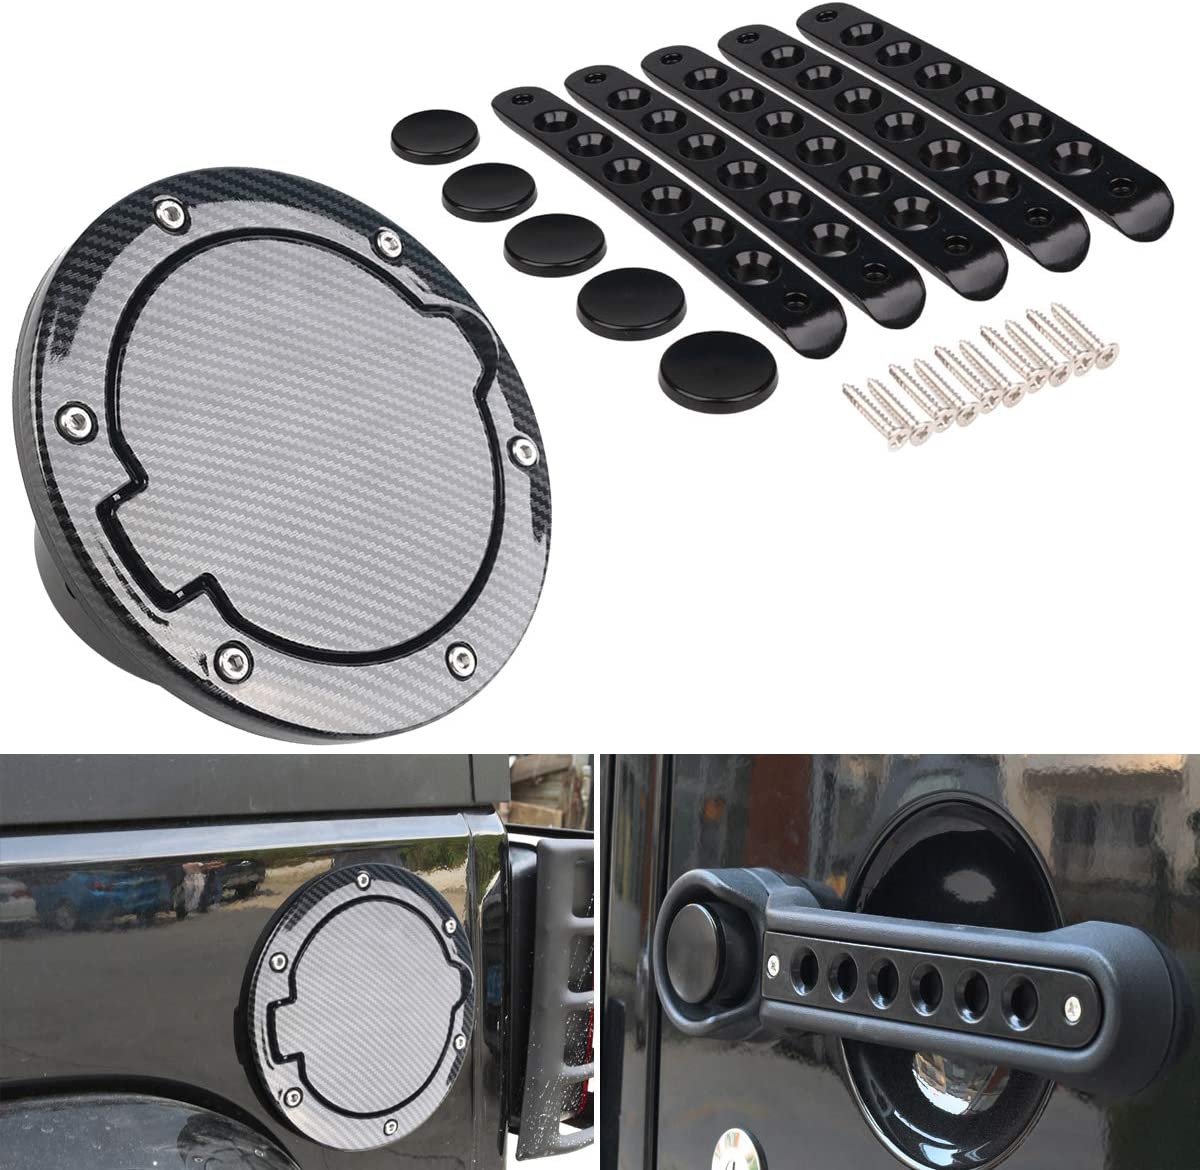 Black Carbon Fiber Max 60% OFF Gas Cap Cover + Inserts Door Handle for Now free shipping